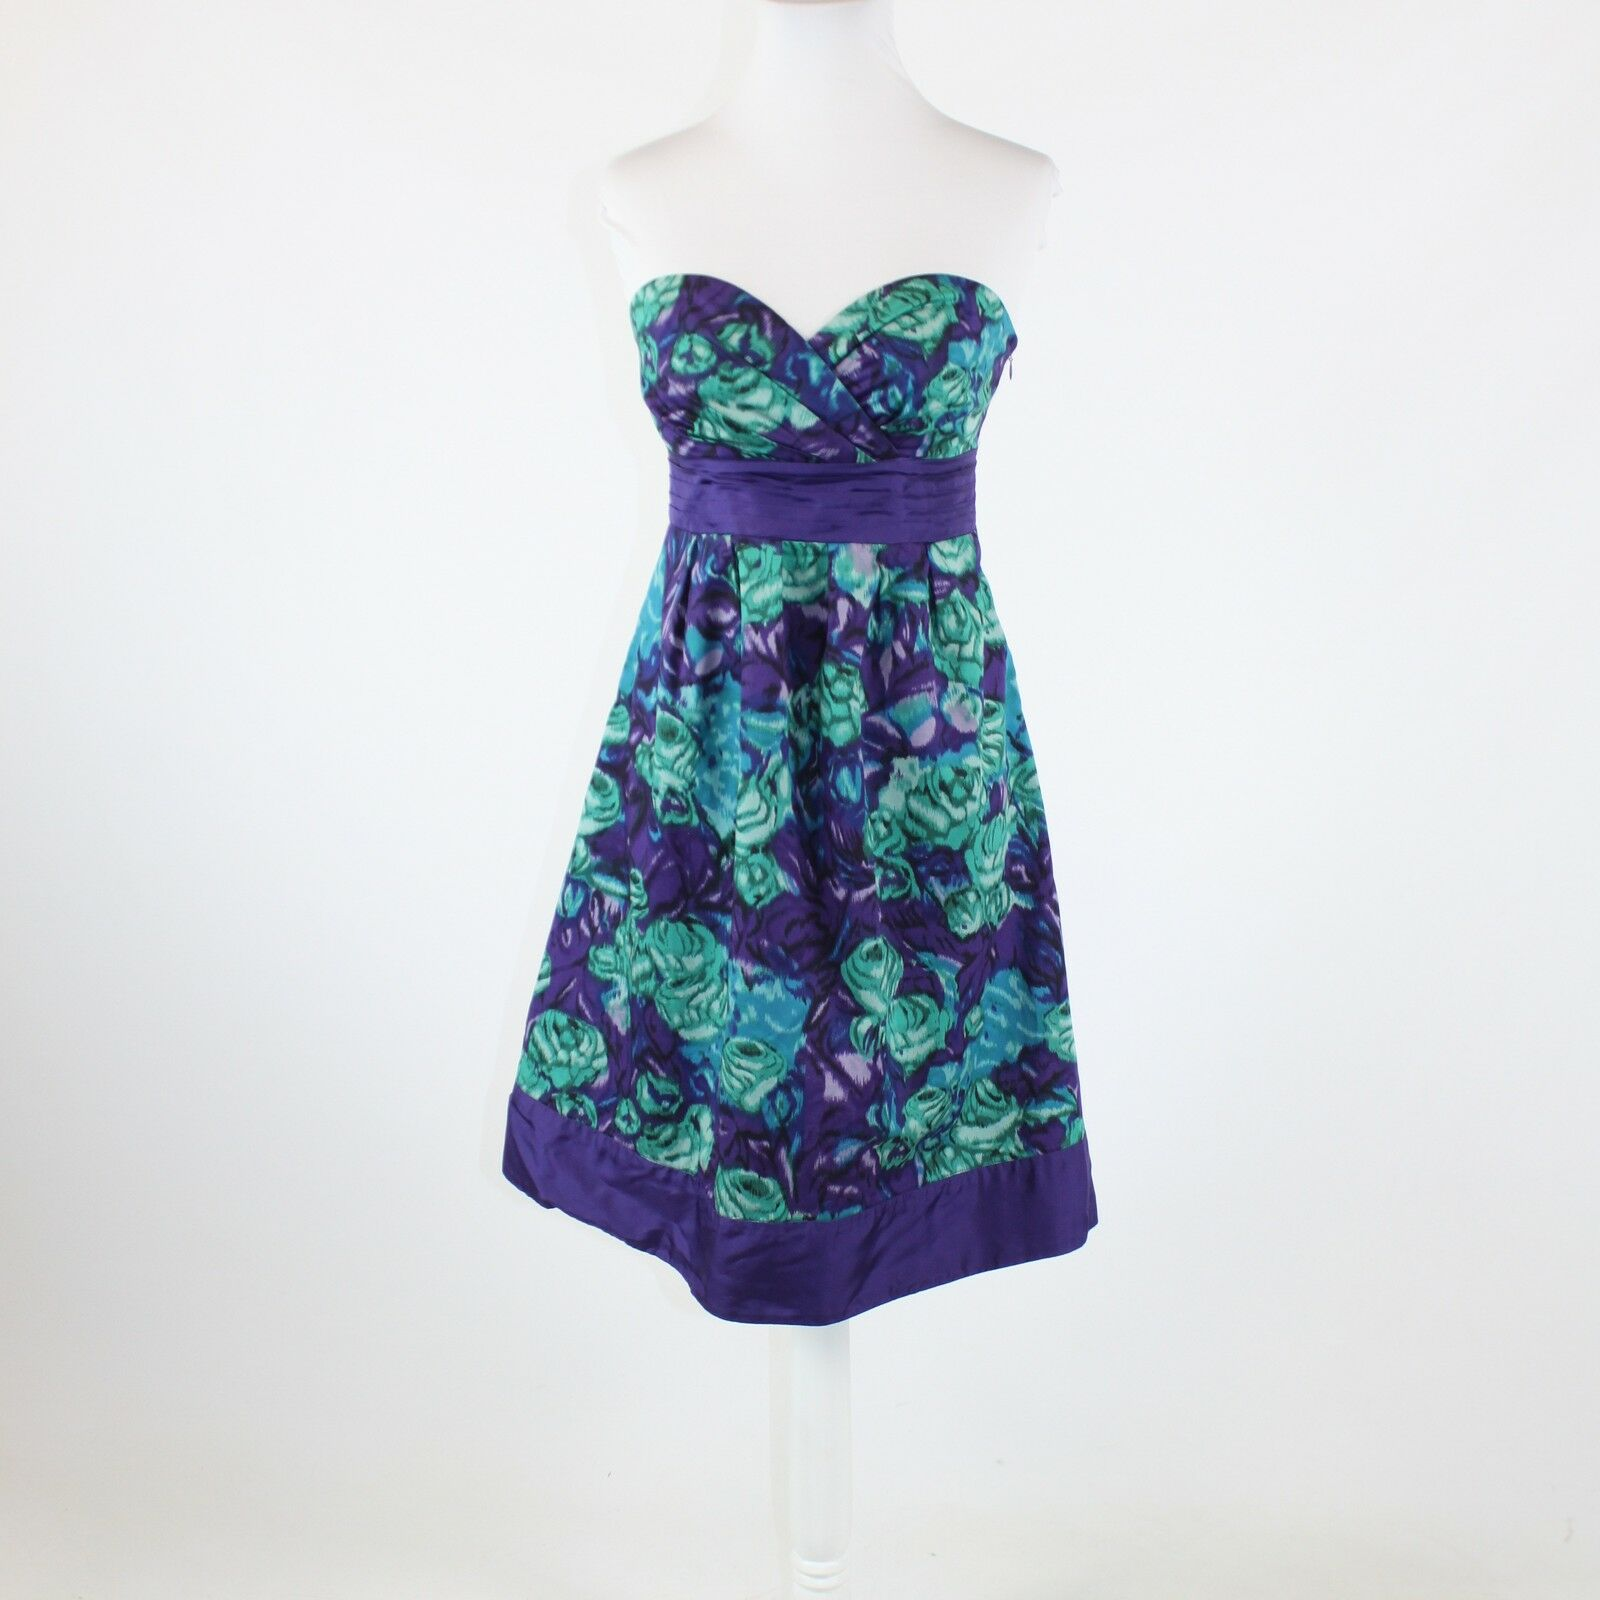 554d10bf230c Purple green abstract 100% cotton ANTHROPOLOGIE MOULINETTE SOEURS dress 4  floral npsftj4439-Dresses